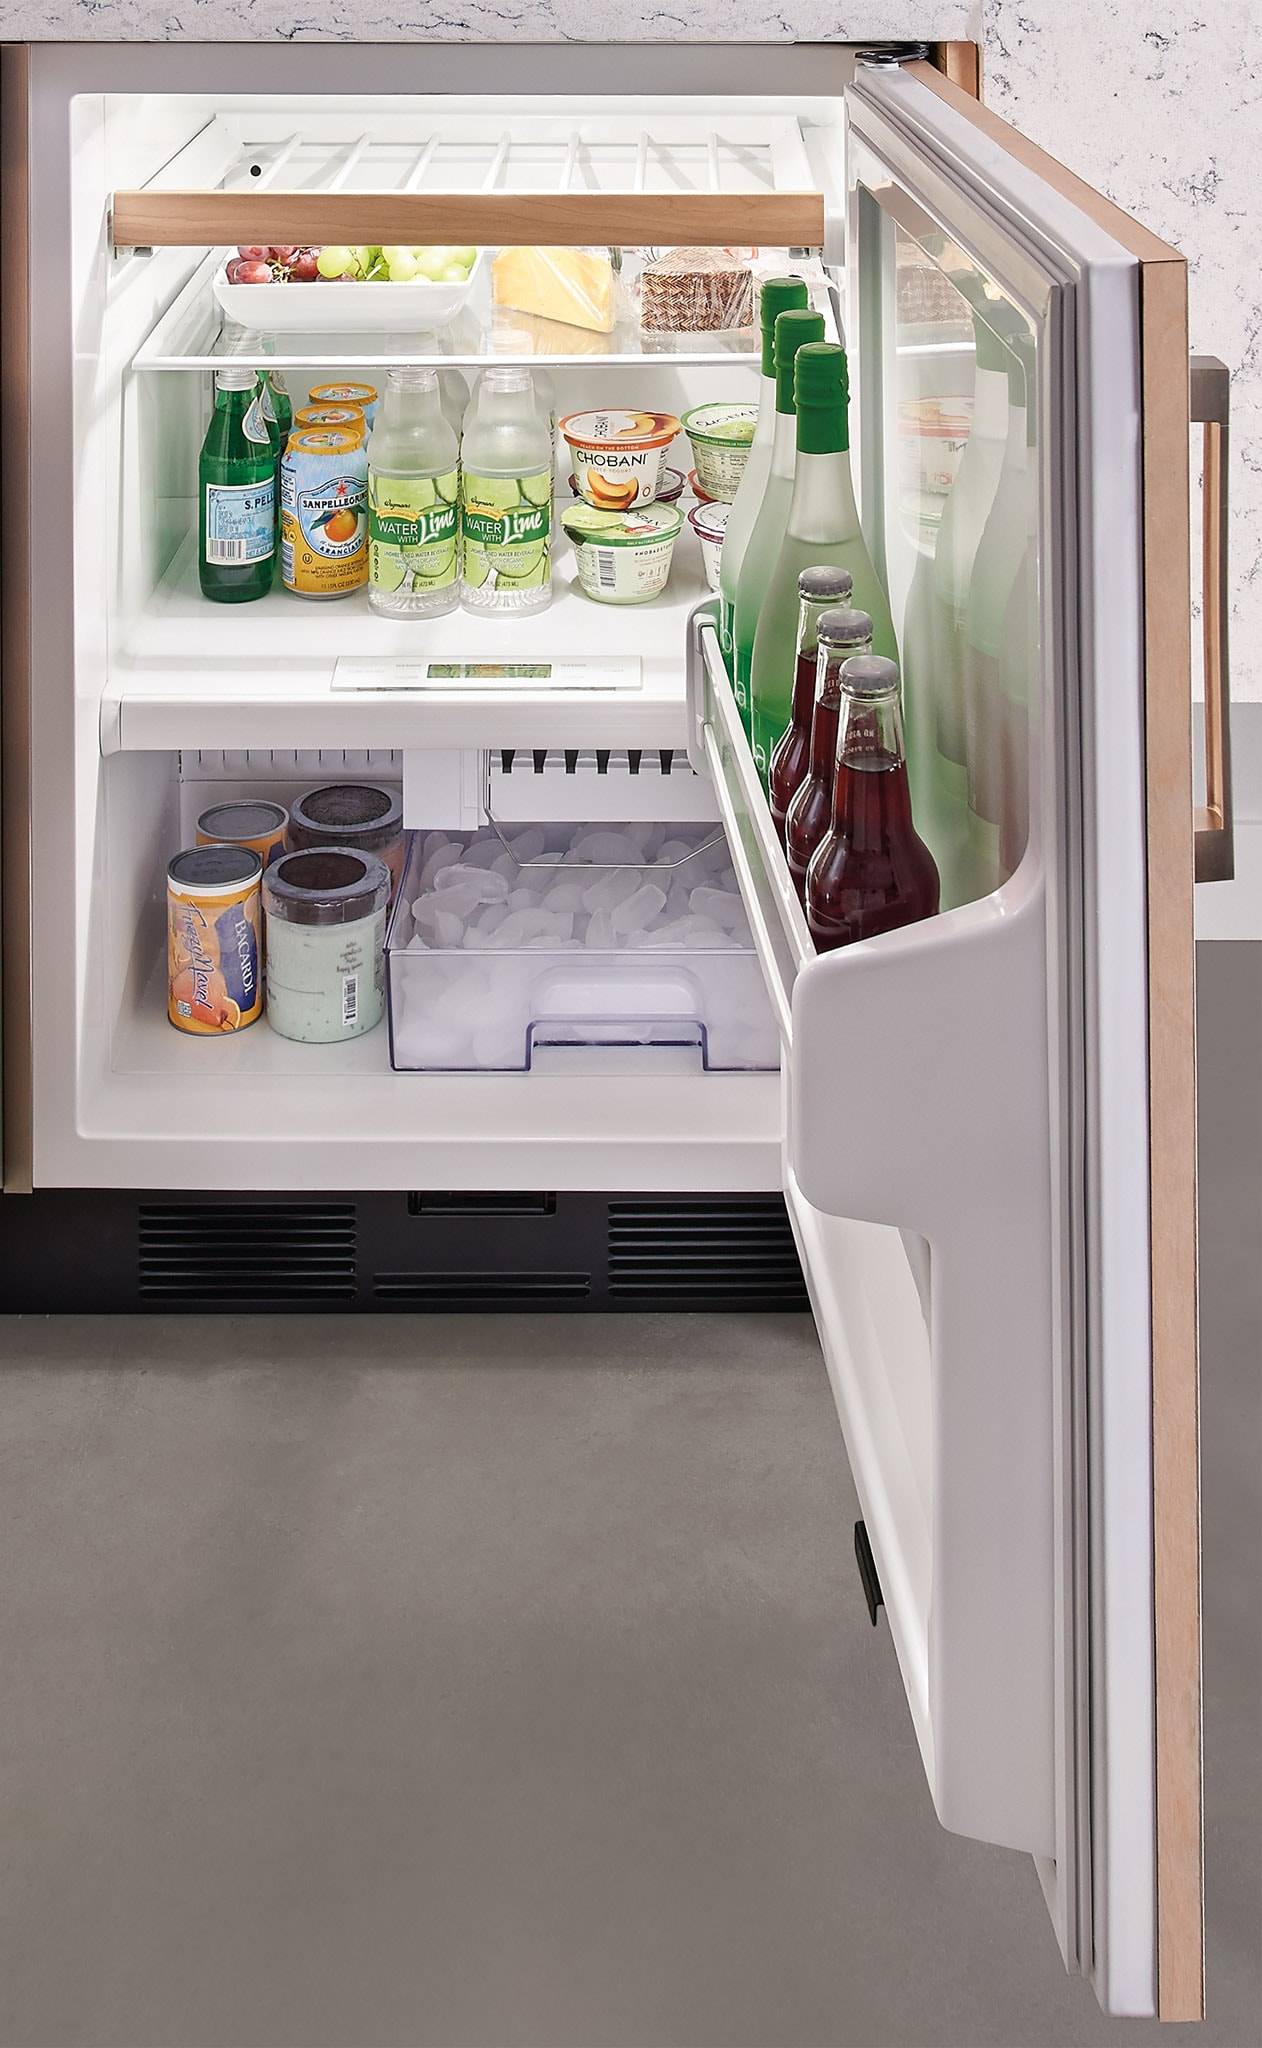 Sub Zero 24 Quot Undercounter Refrigerator Freezer With Ice